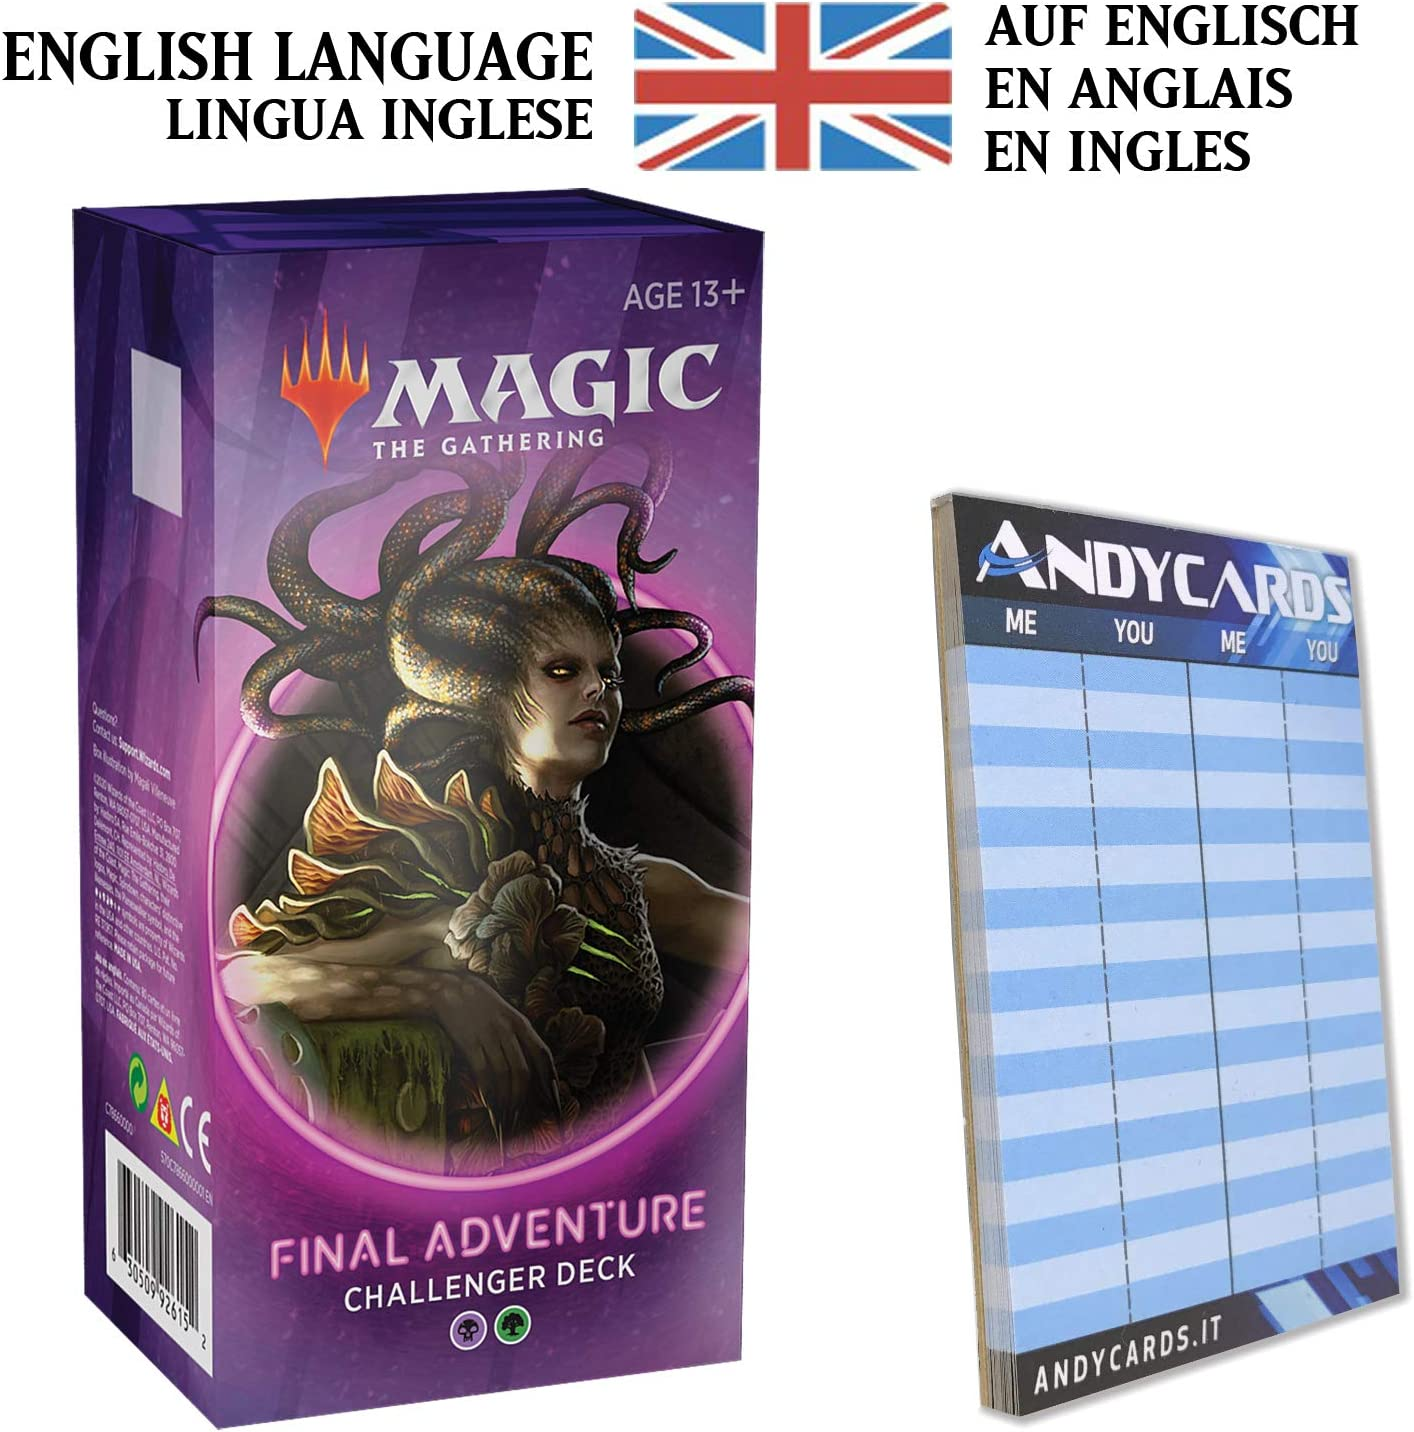 Andycards Final Adventure in English - Challenger Deck 2020 Green Black - MTG Magic The Gathering + Scorepad